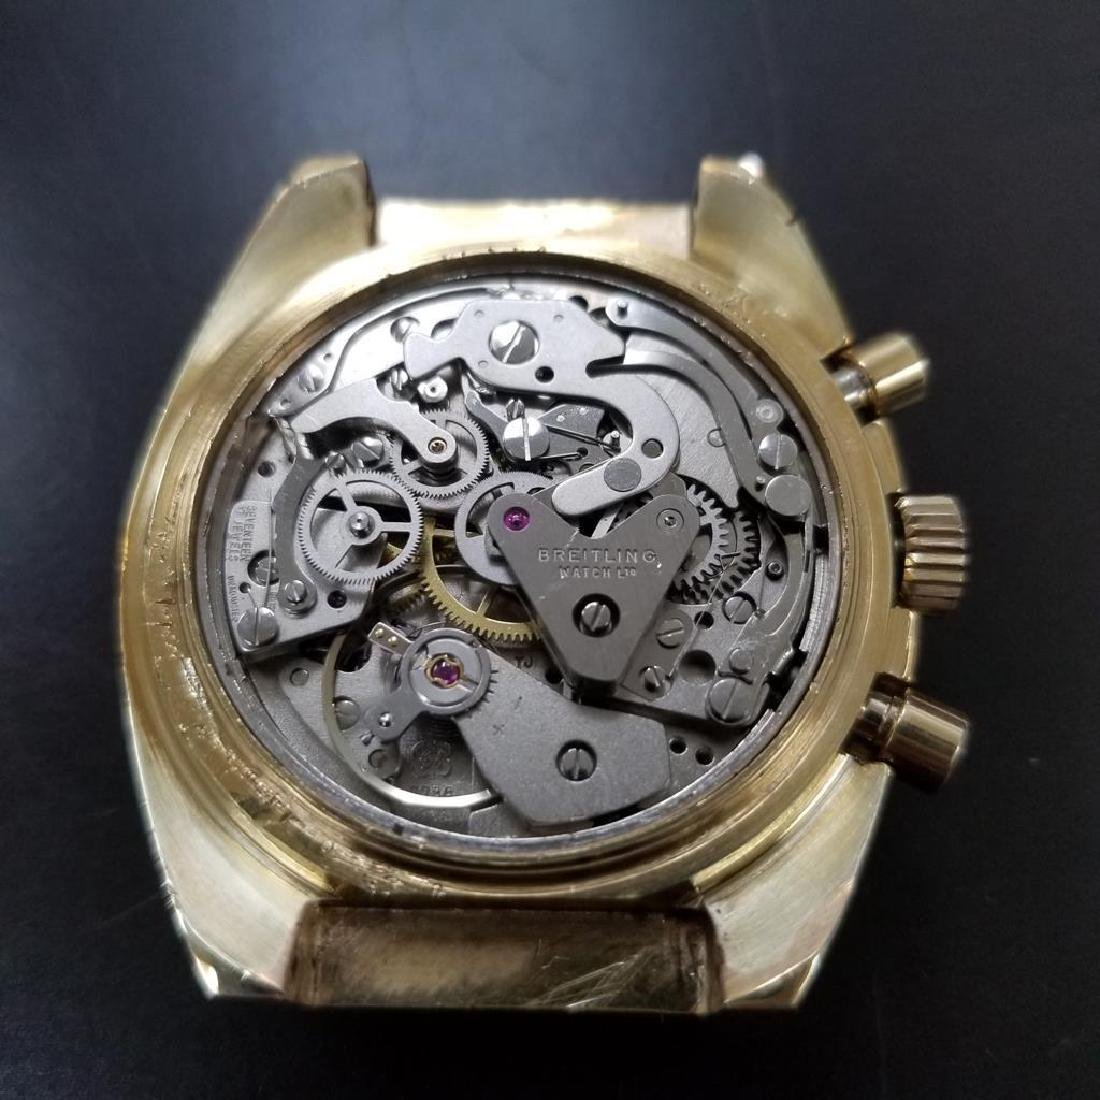 BREITLING 1451 Tricompax Manual Wind Chronograph 42mm - 9